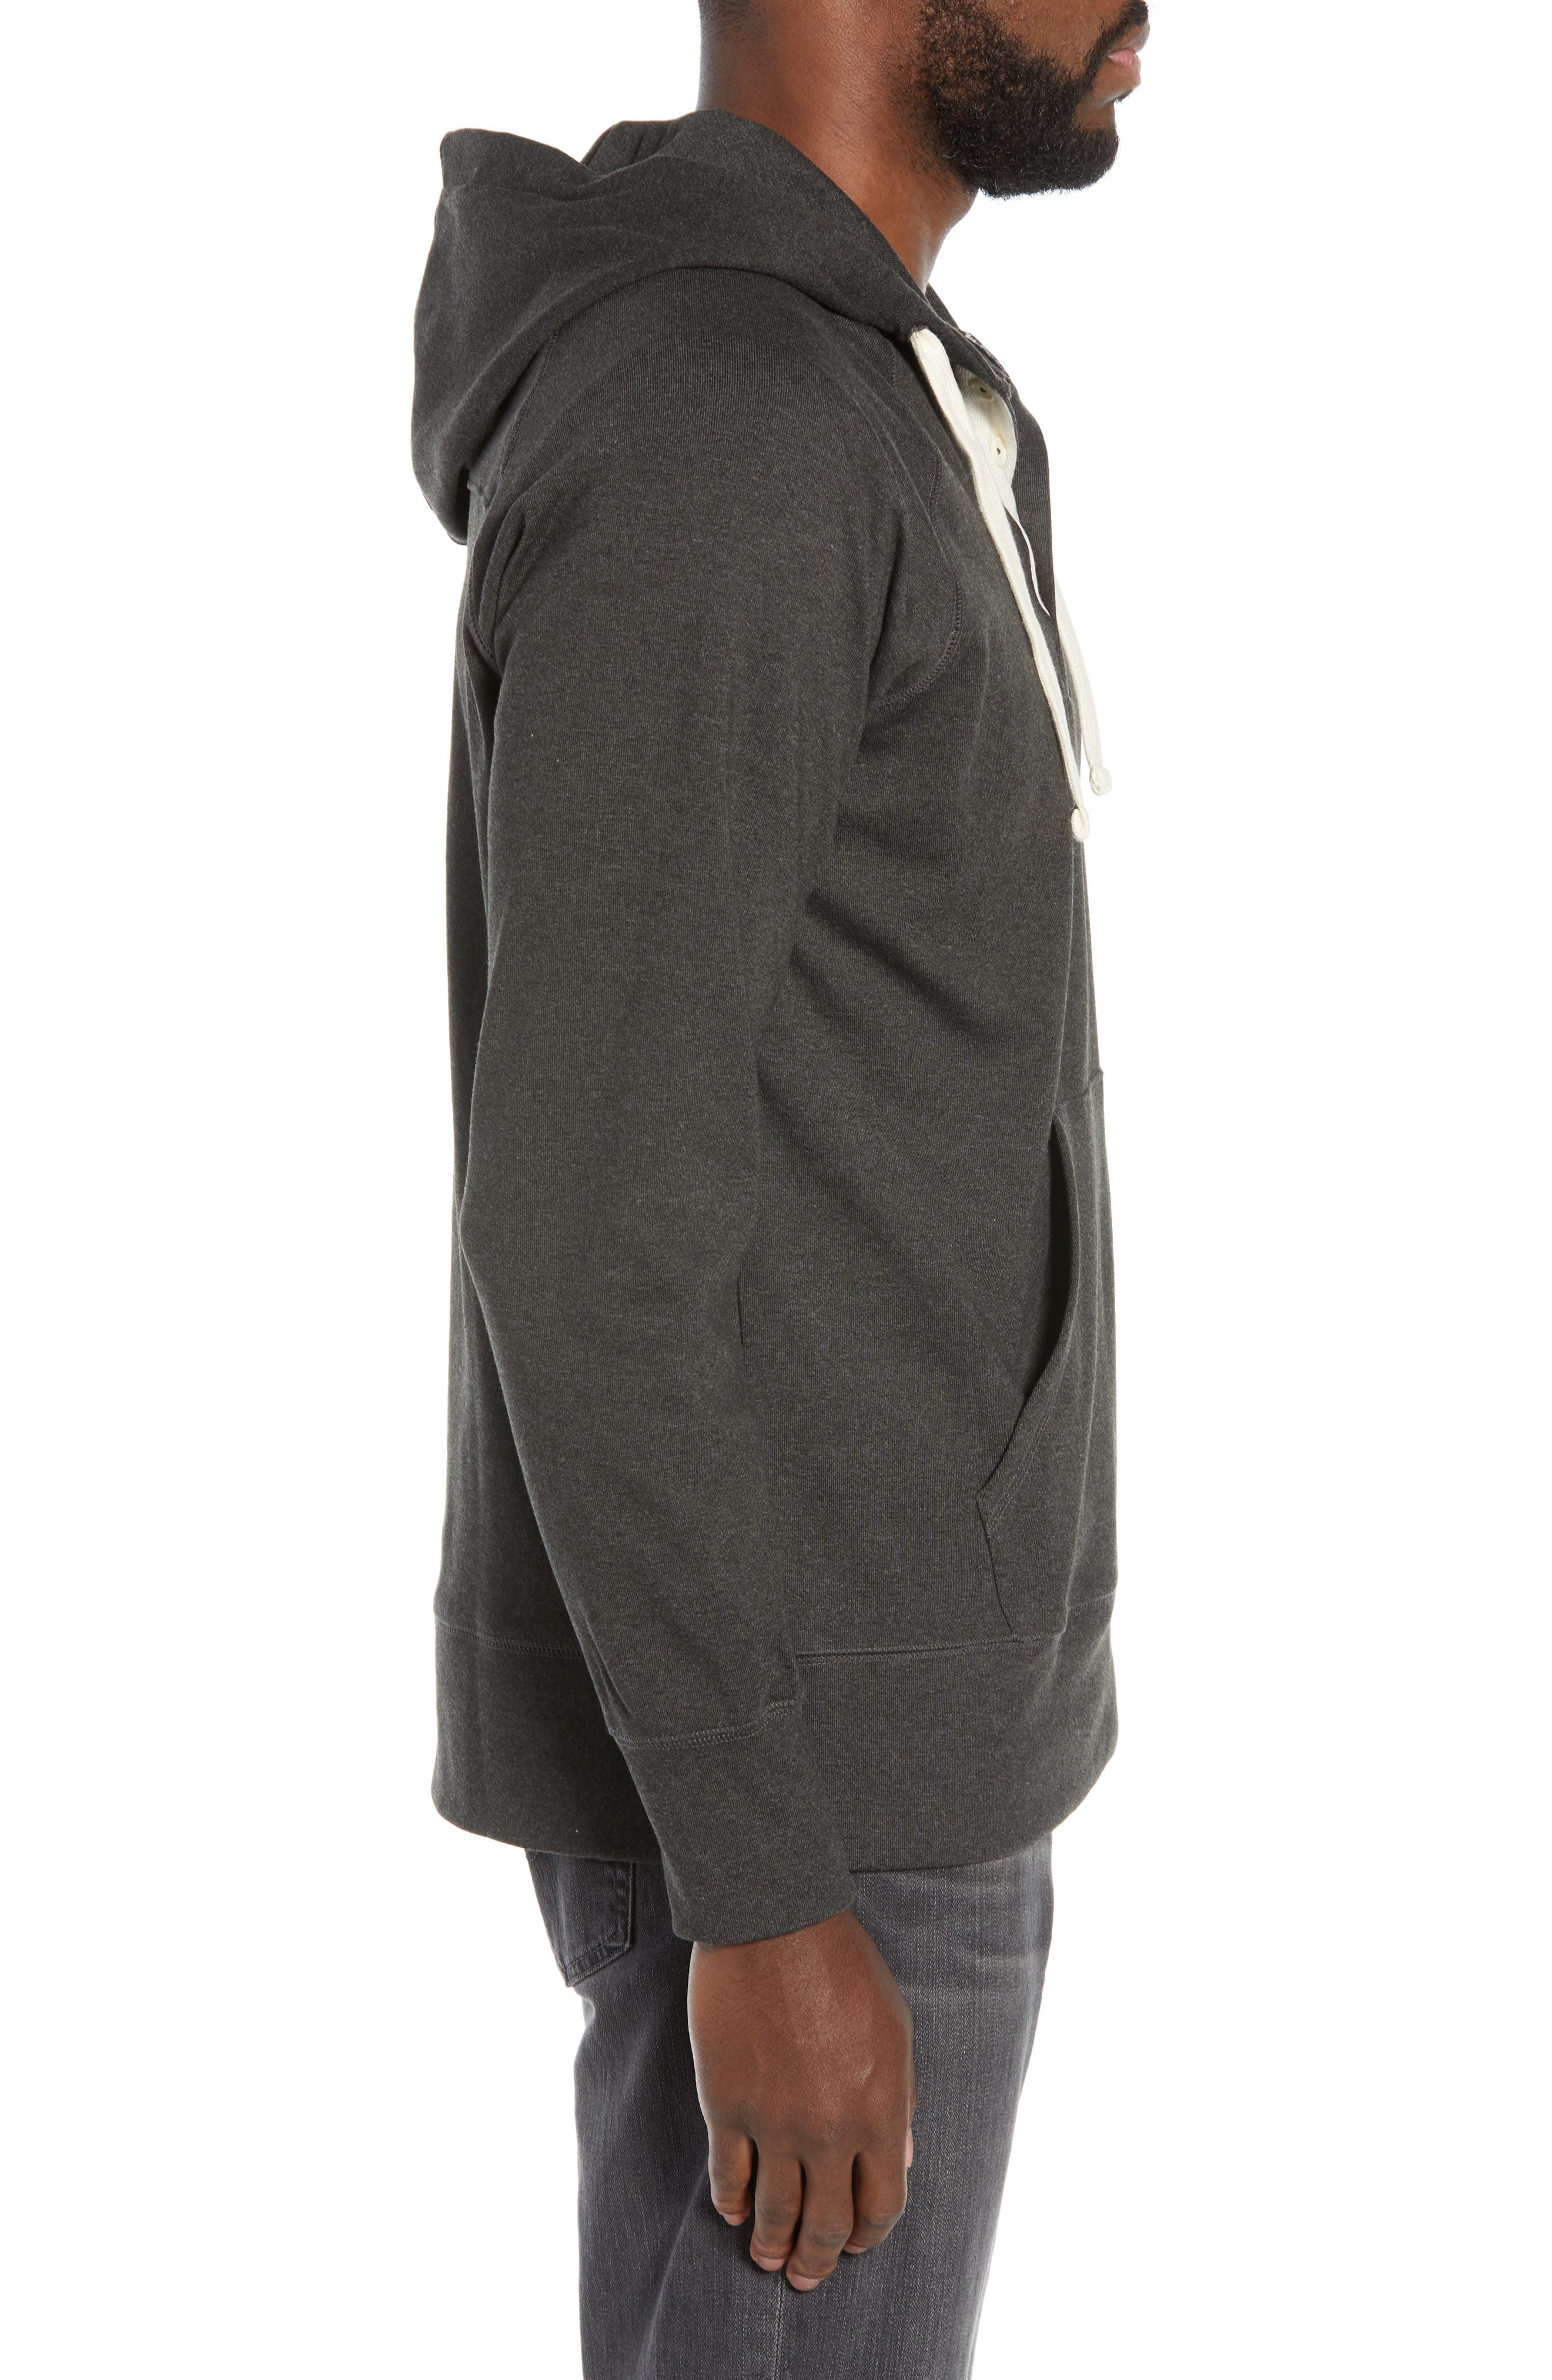 Puremeso Pullover Hoodie,                             Alternate thumbnail 3, color,                             CHARCOAL